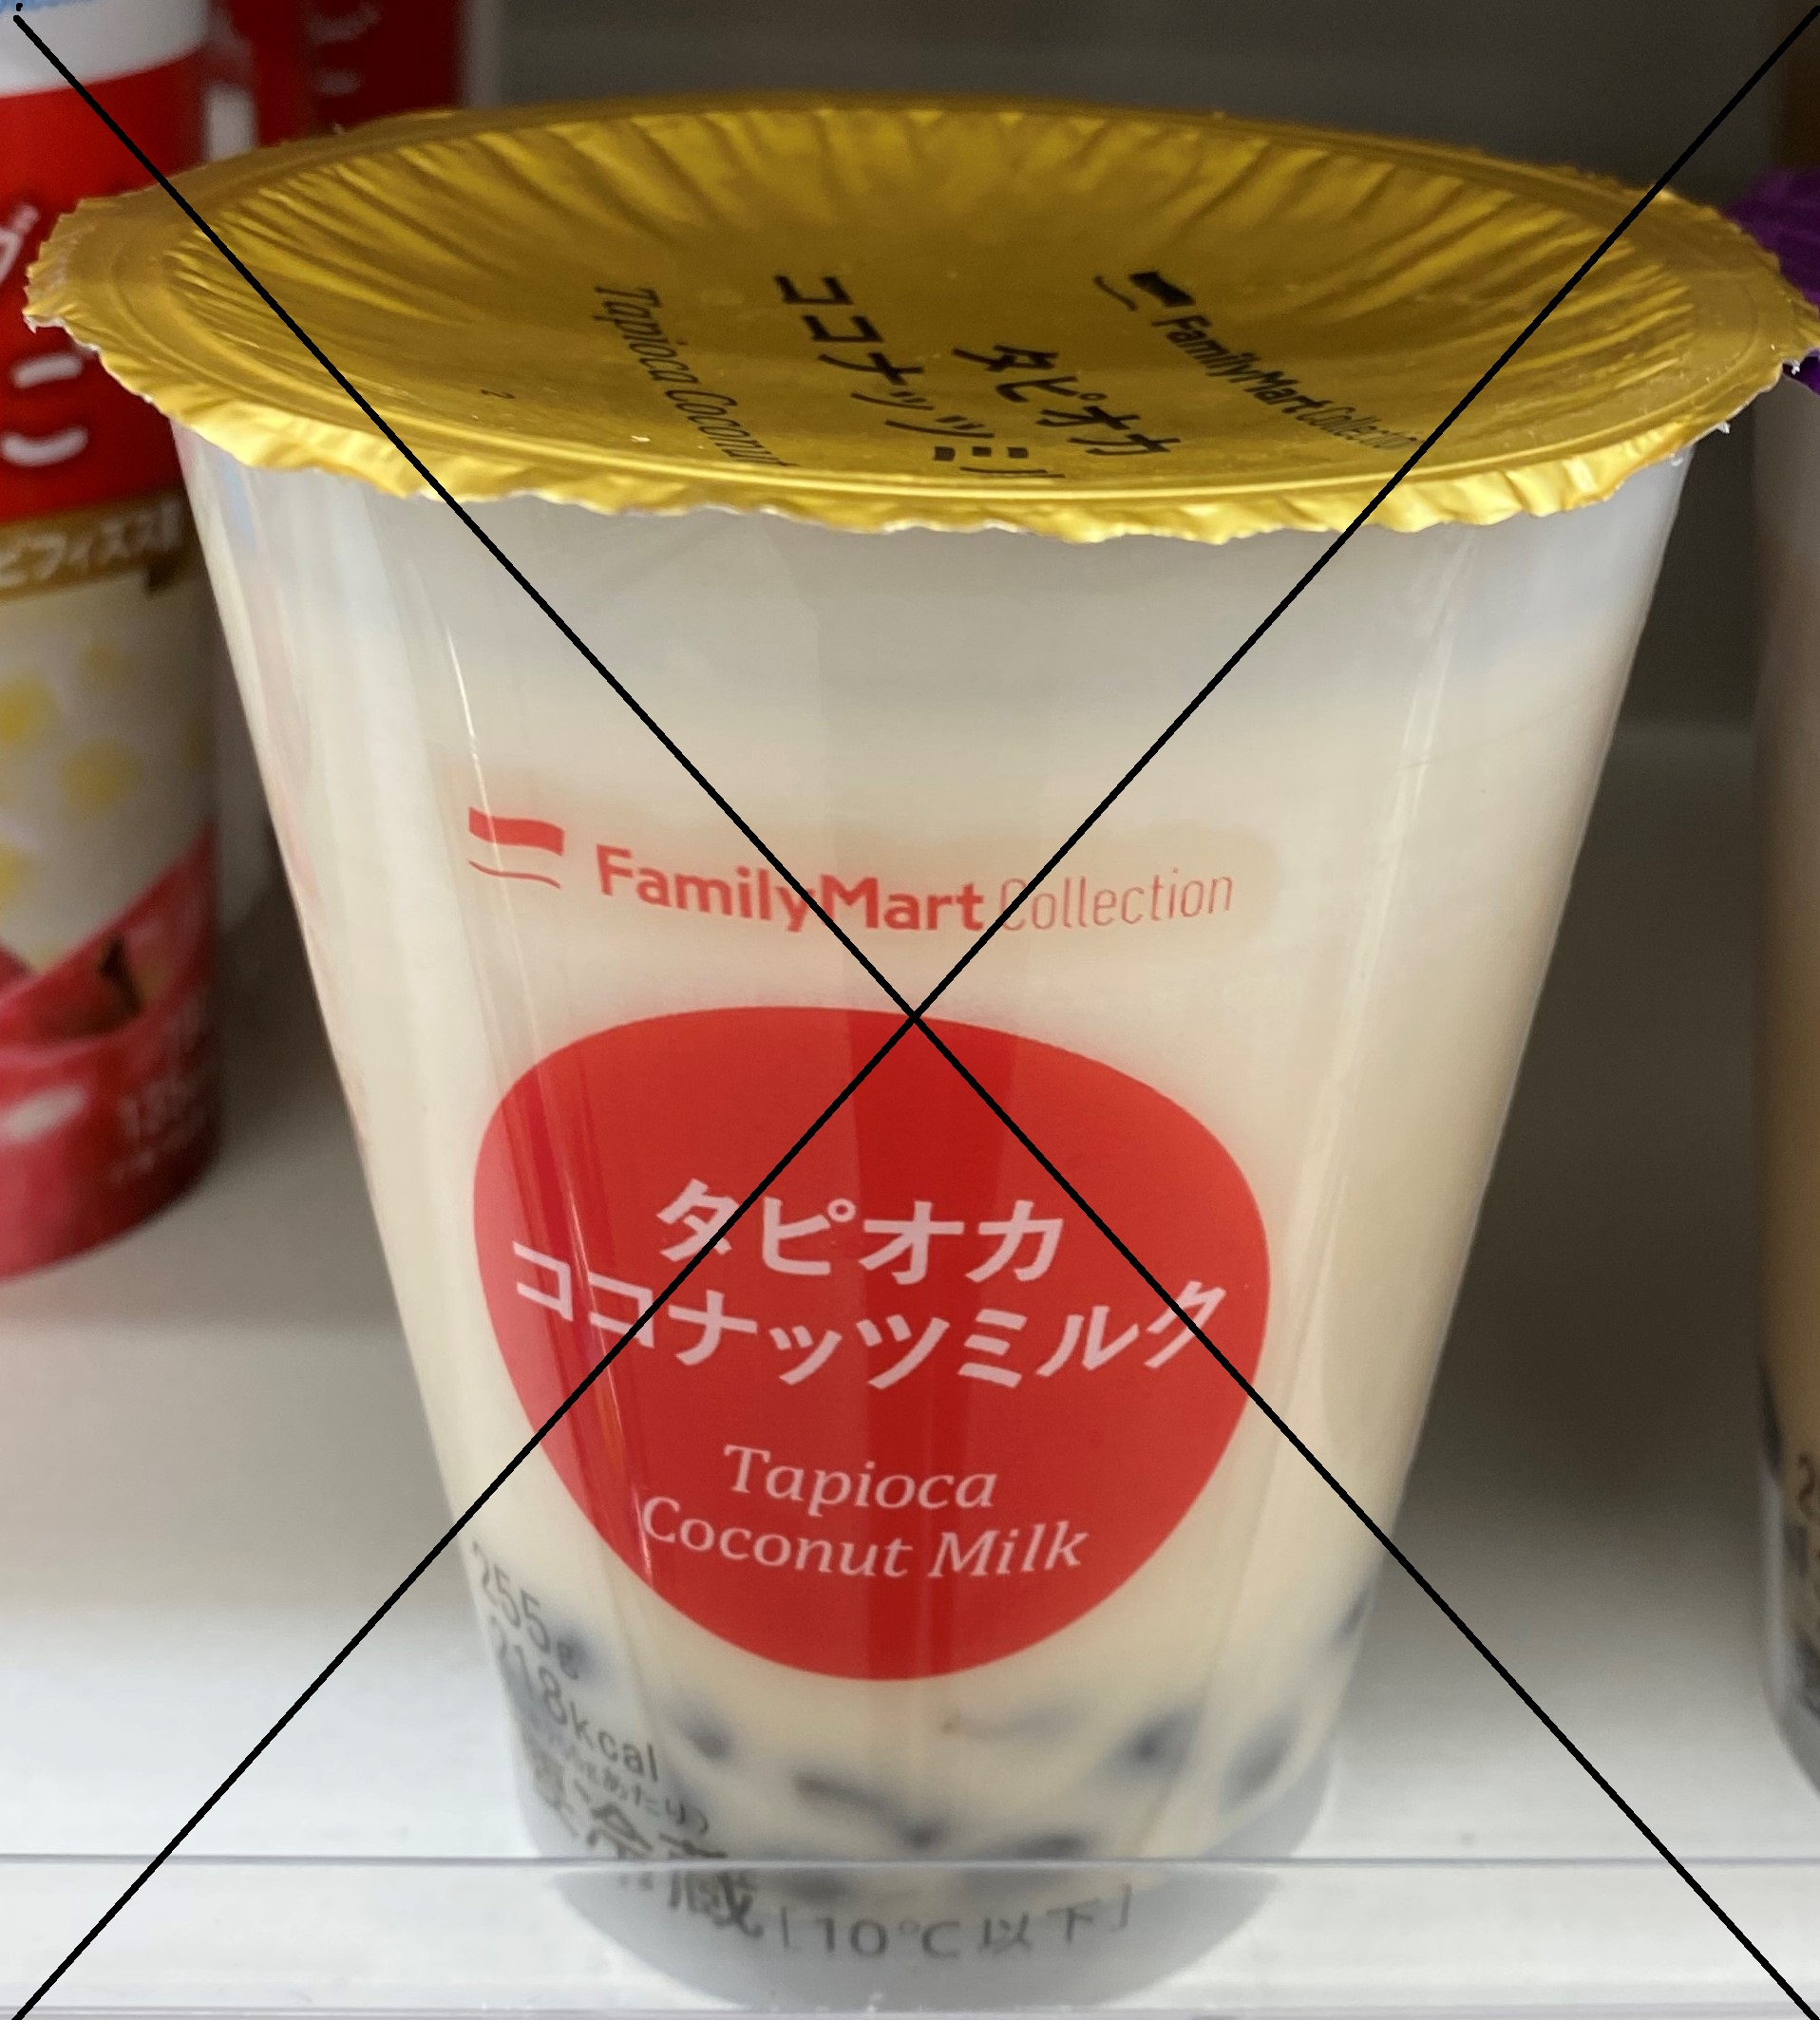 Family Mart Tapioca Coconut Milk